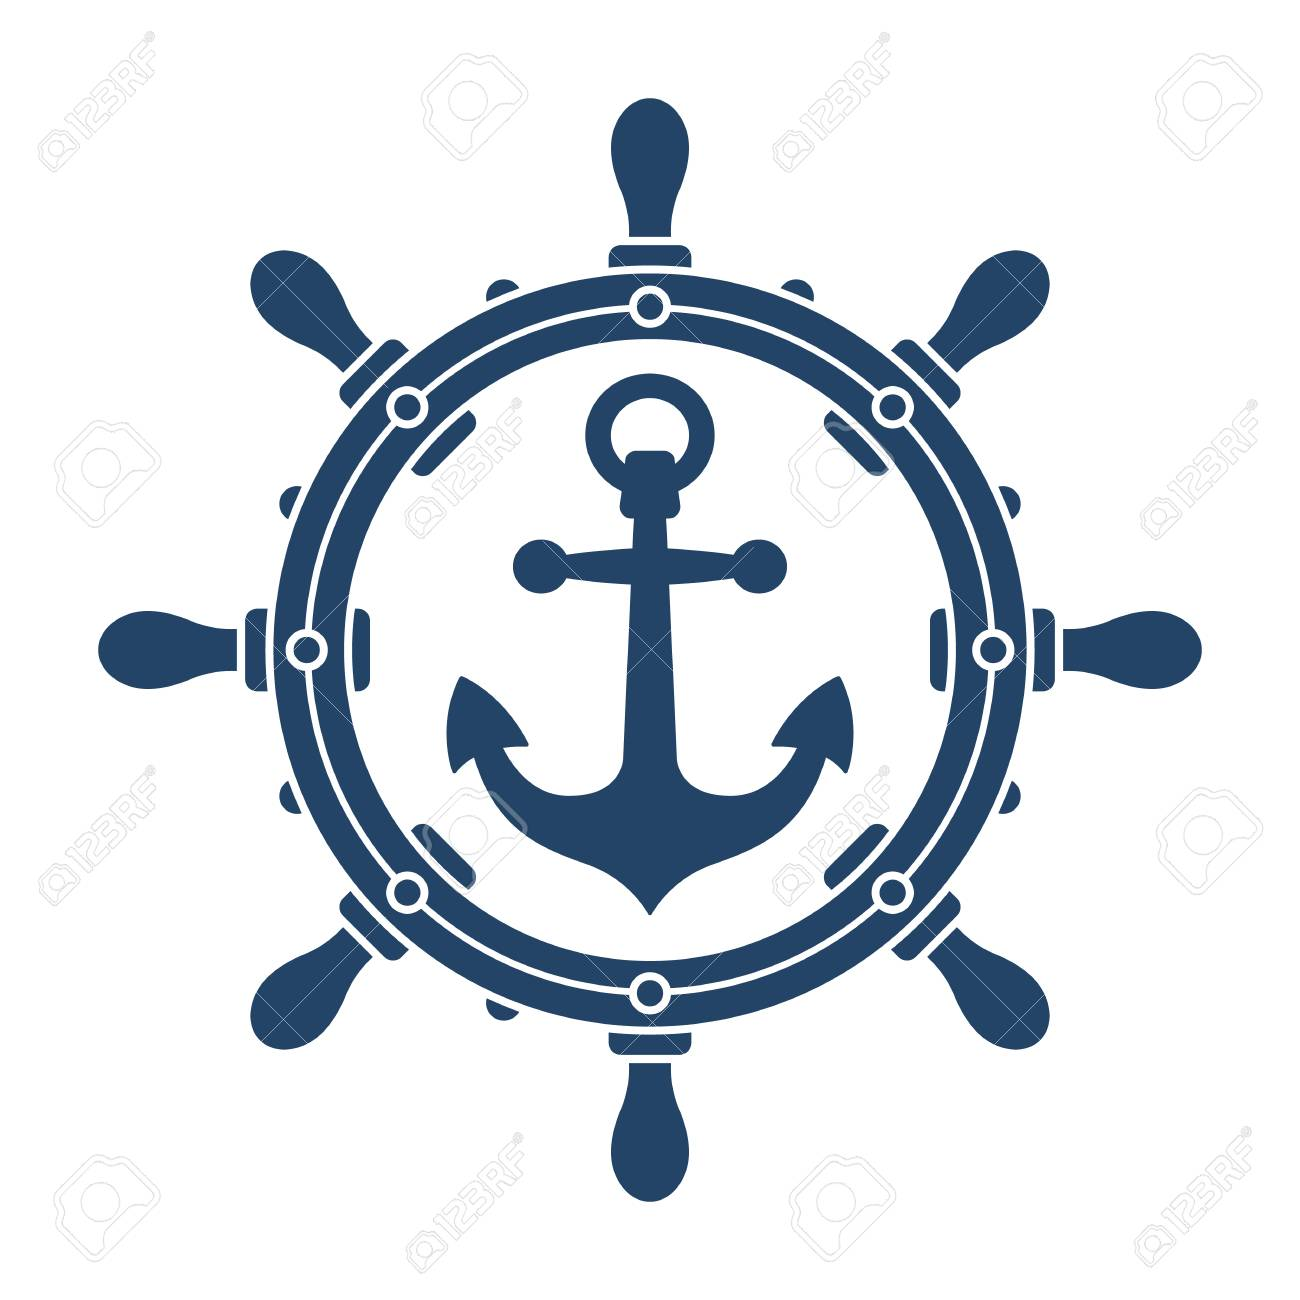 Ship Steering Wheel And Anchor Navigation Emblem Or Logo Isolated Royalty Free Cliparts Vectors And Stock Illustration Image 97494328